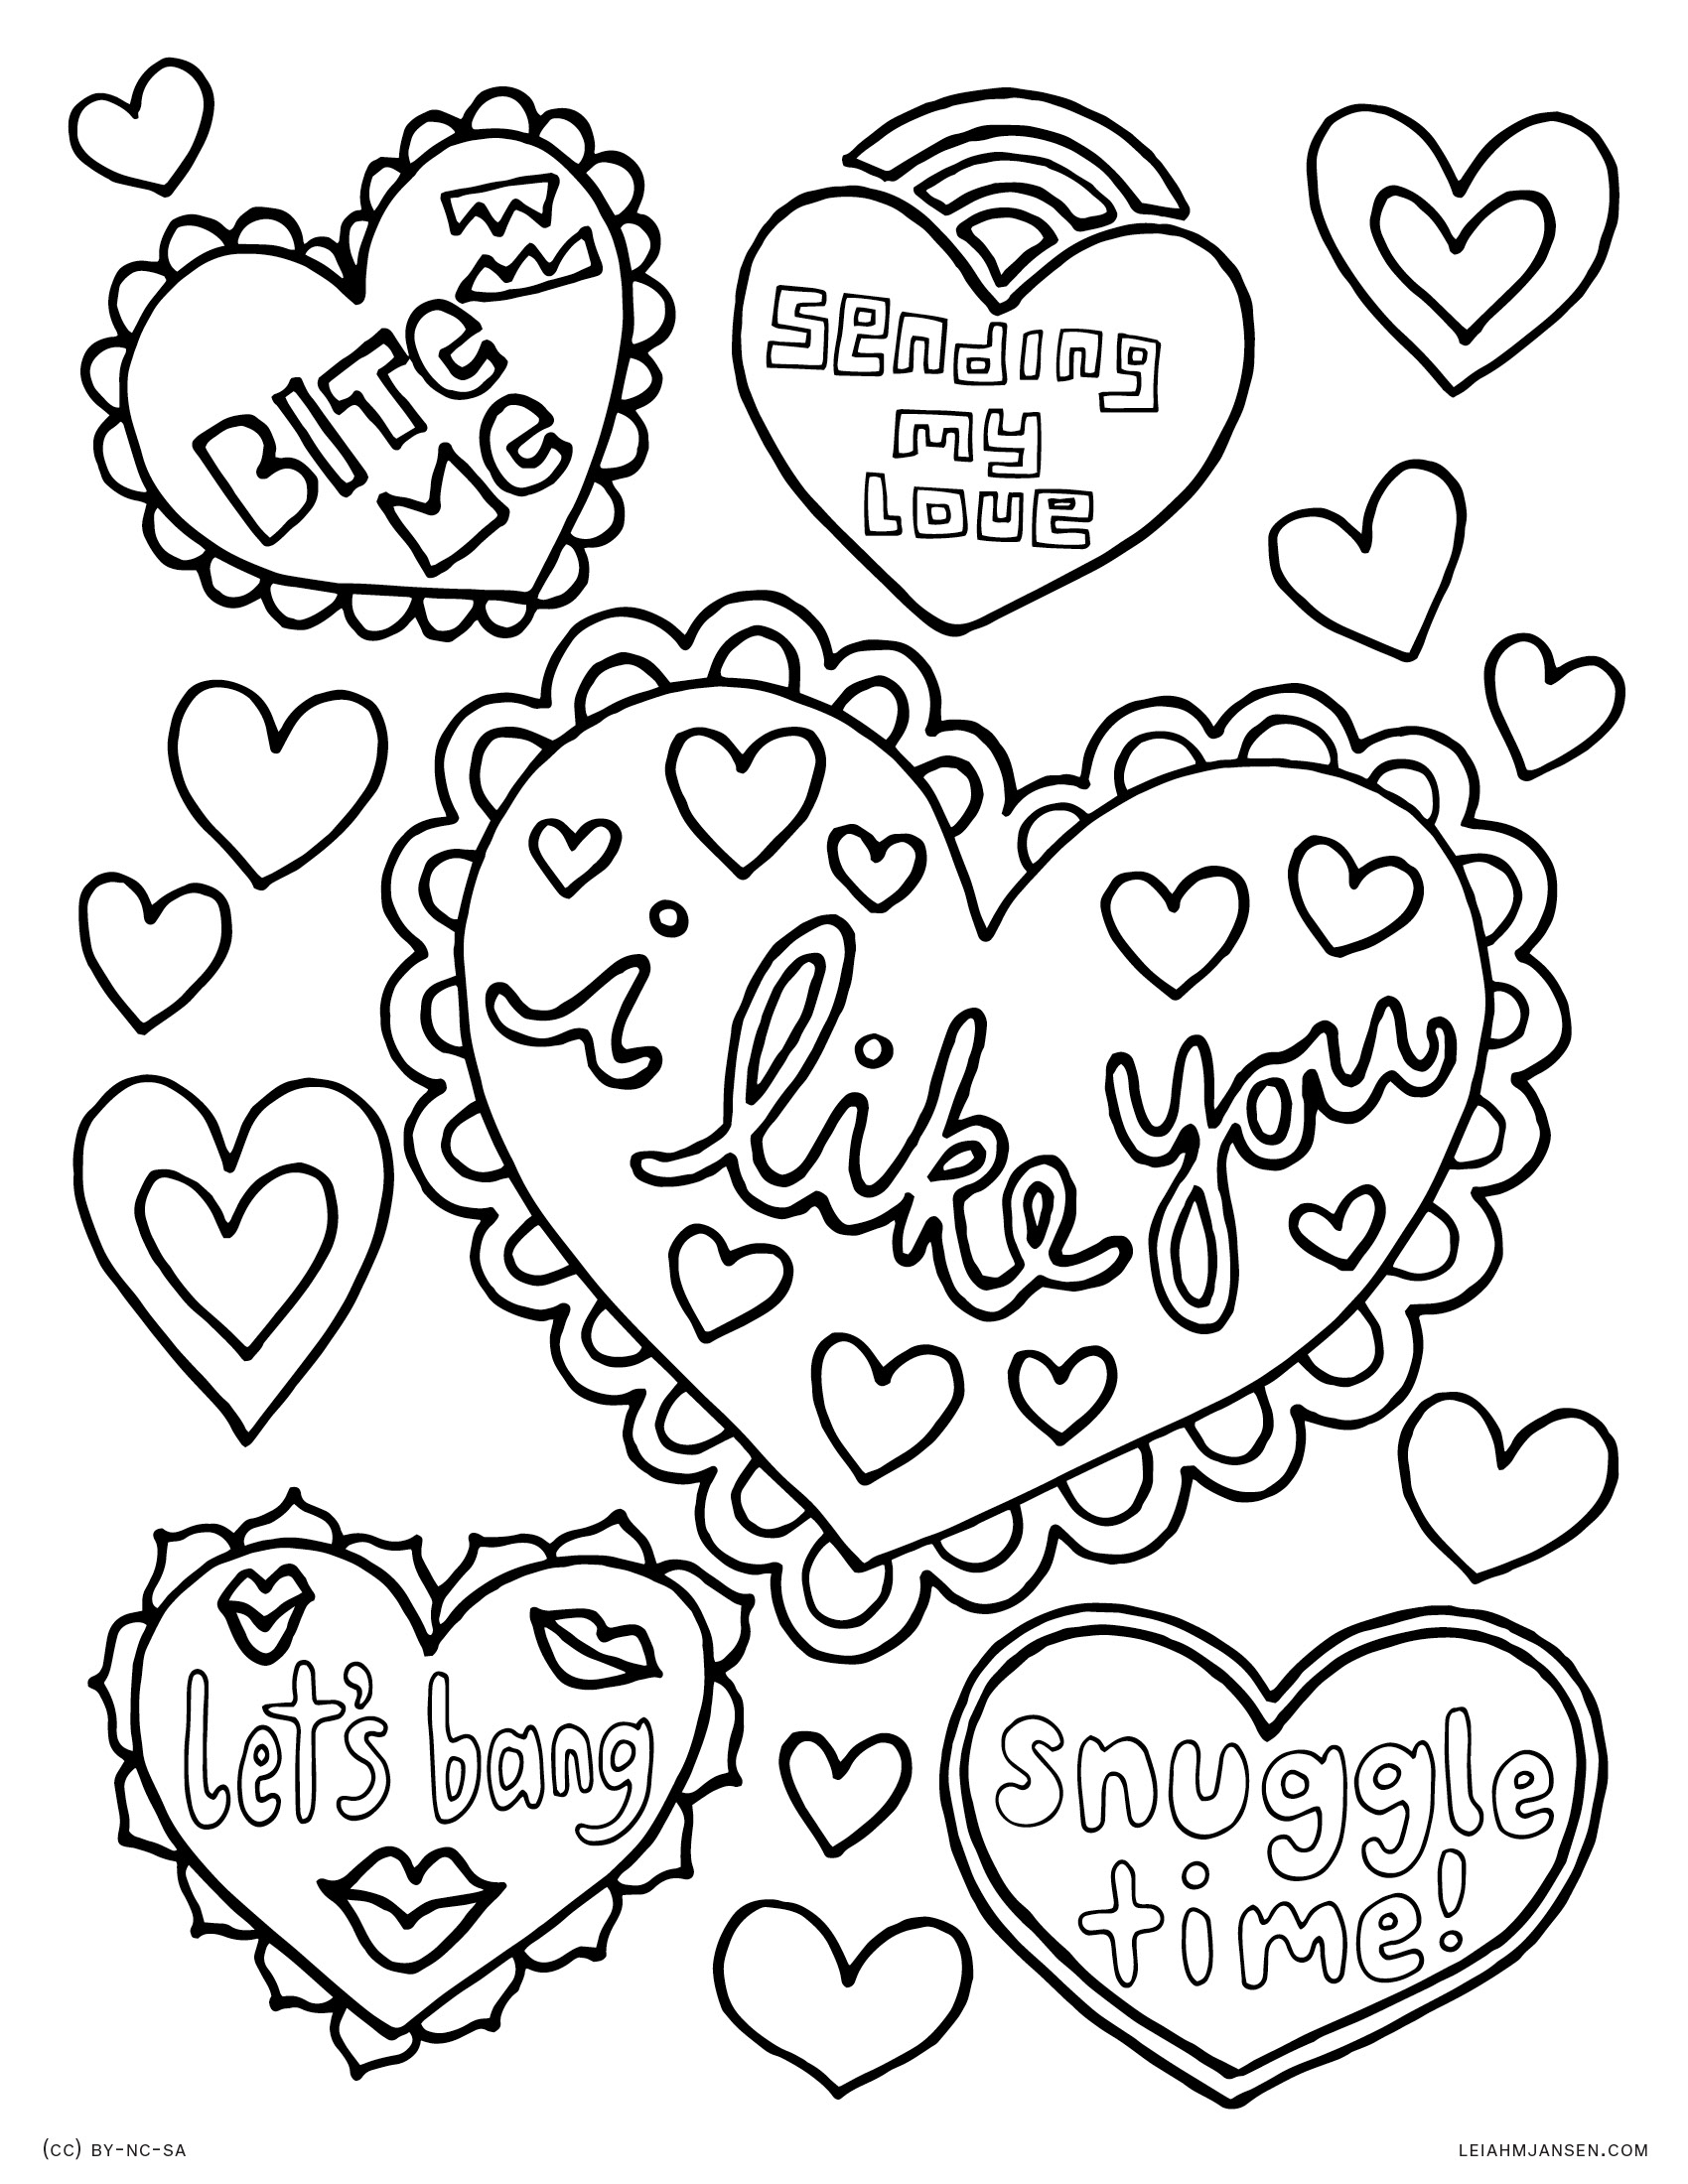 e87f8f3f6982d78bef3368e212620ea3 likewise  additionally LMJ coloring page 045 valentines hearts in addition 9c4bzqGKi moreover enkpatf likewise  together with  in addition  further WordSearch Ex le together with  additionally 6ff2ef6bcec995f31ded62f77bc81deb. on fairy adult coloring pages online free